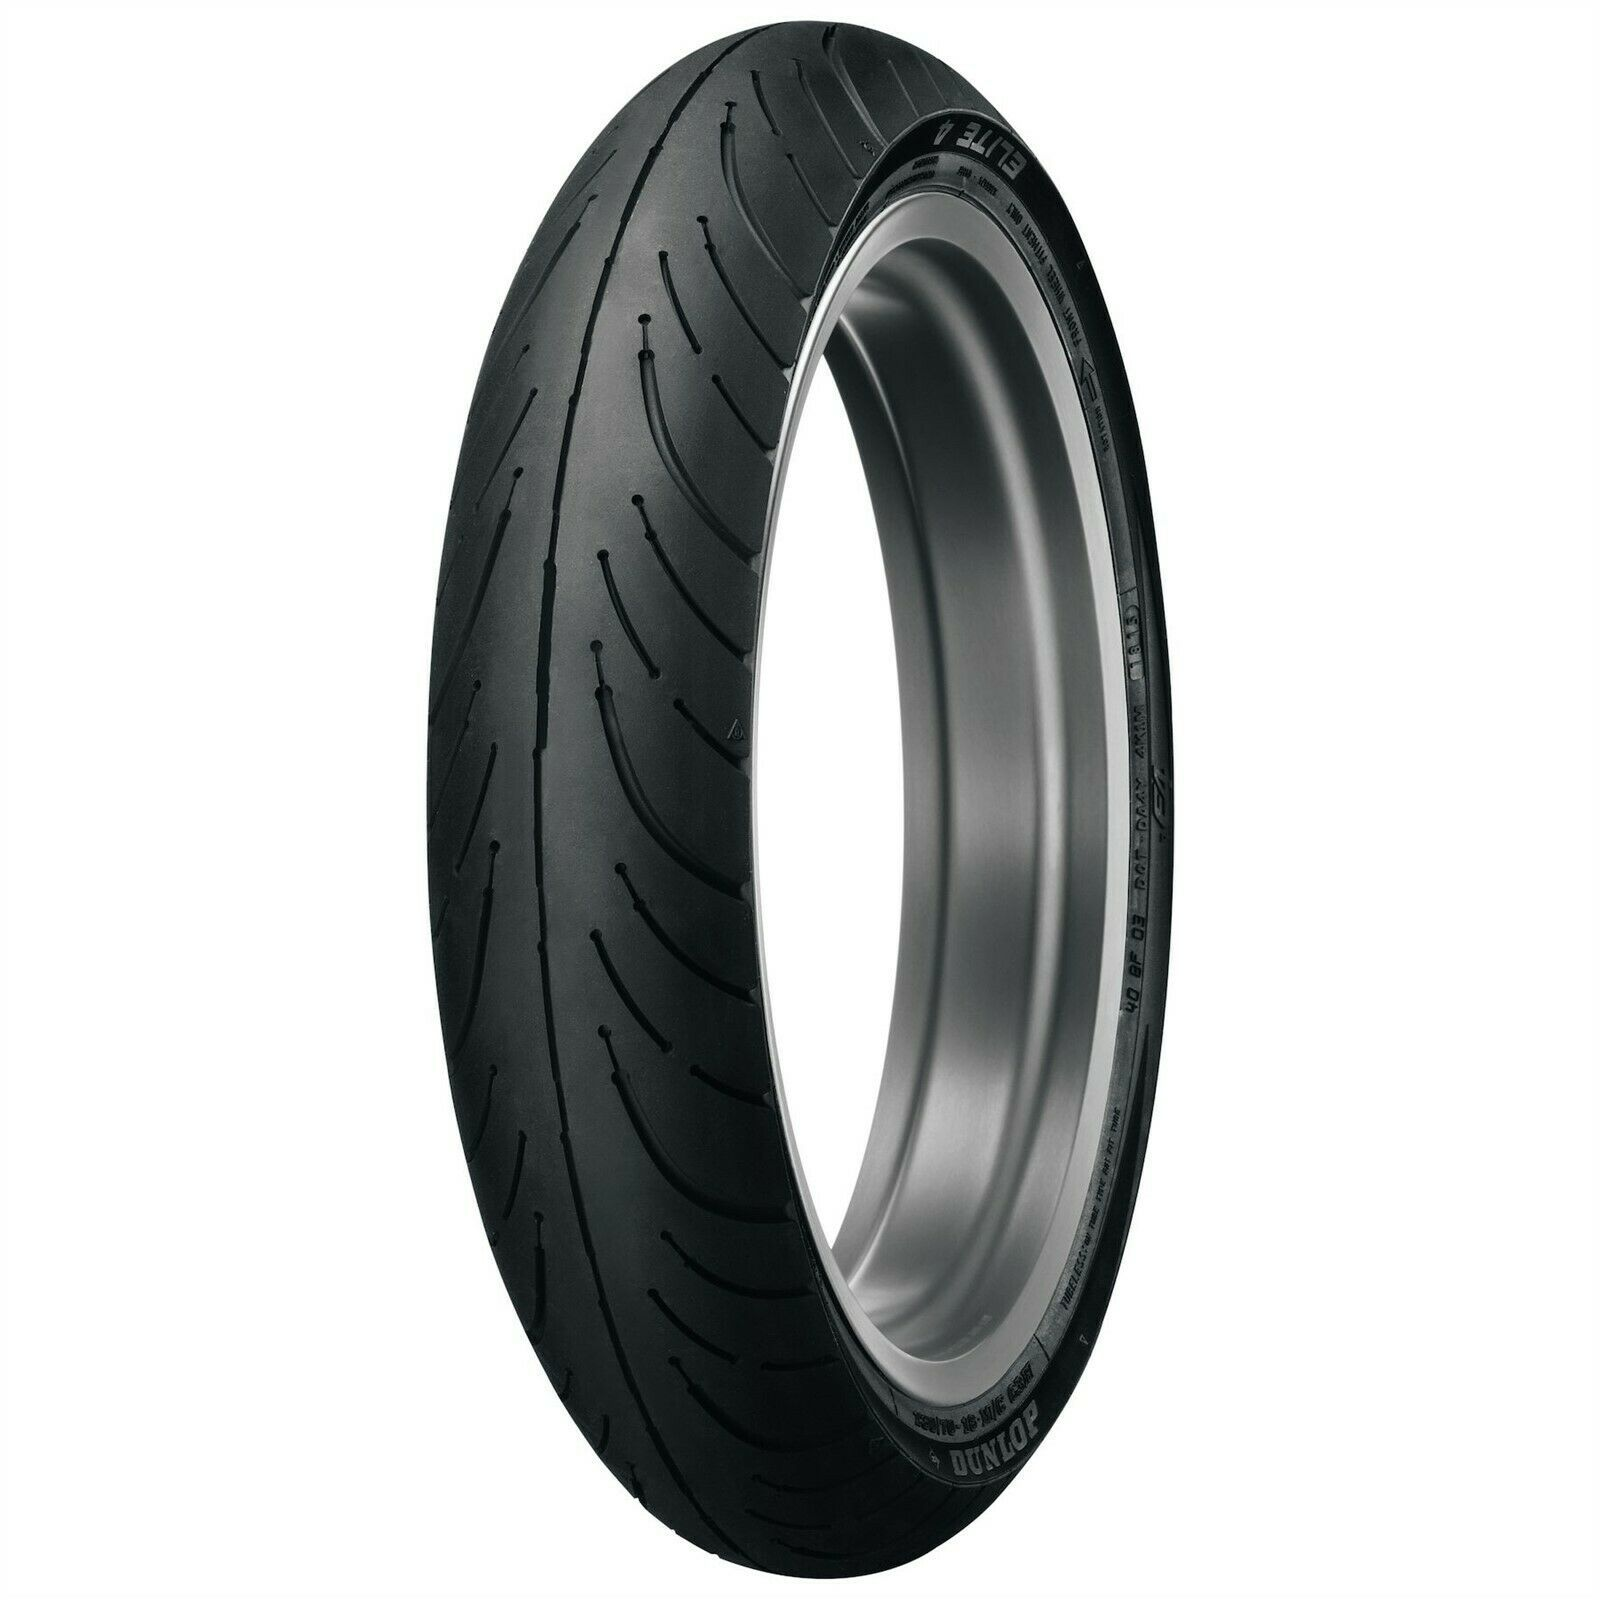 New Dunlop Elite 4 100/90-19 Bias Front Motorcycle Tire 57H High Mileage